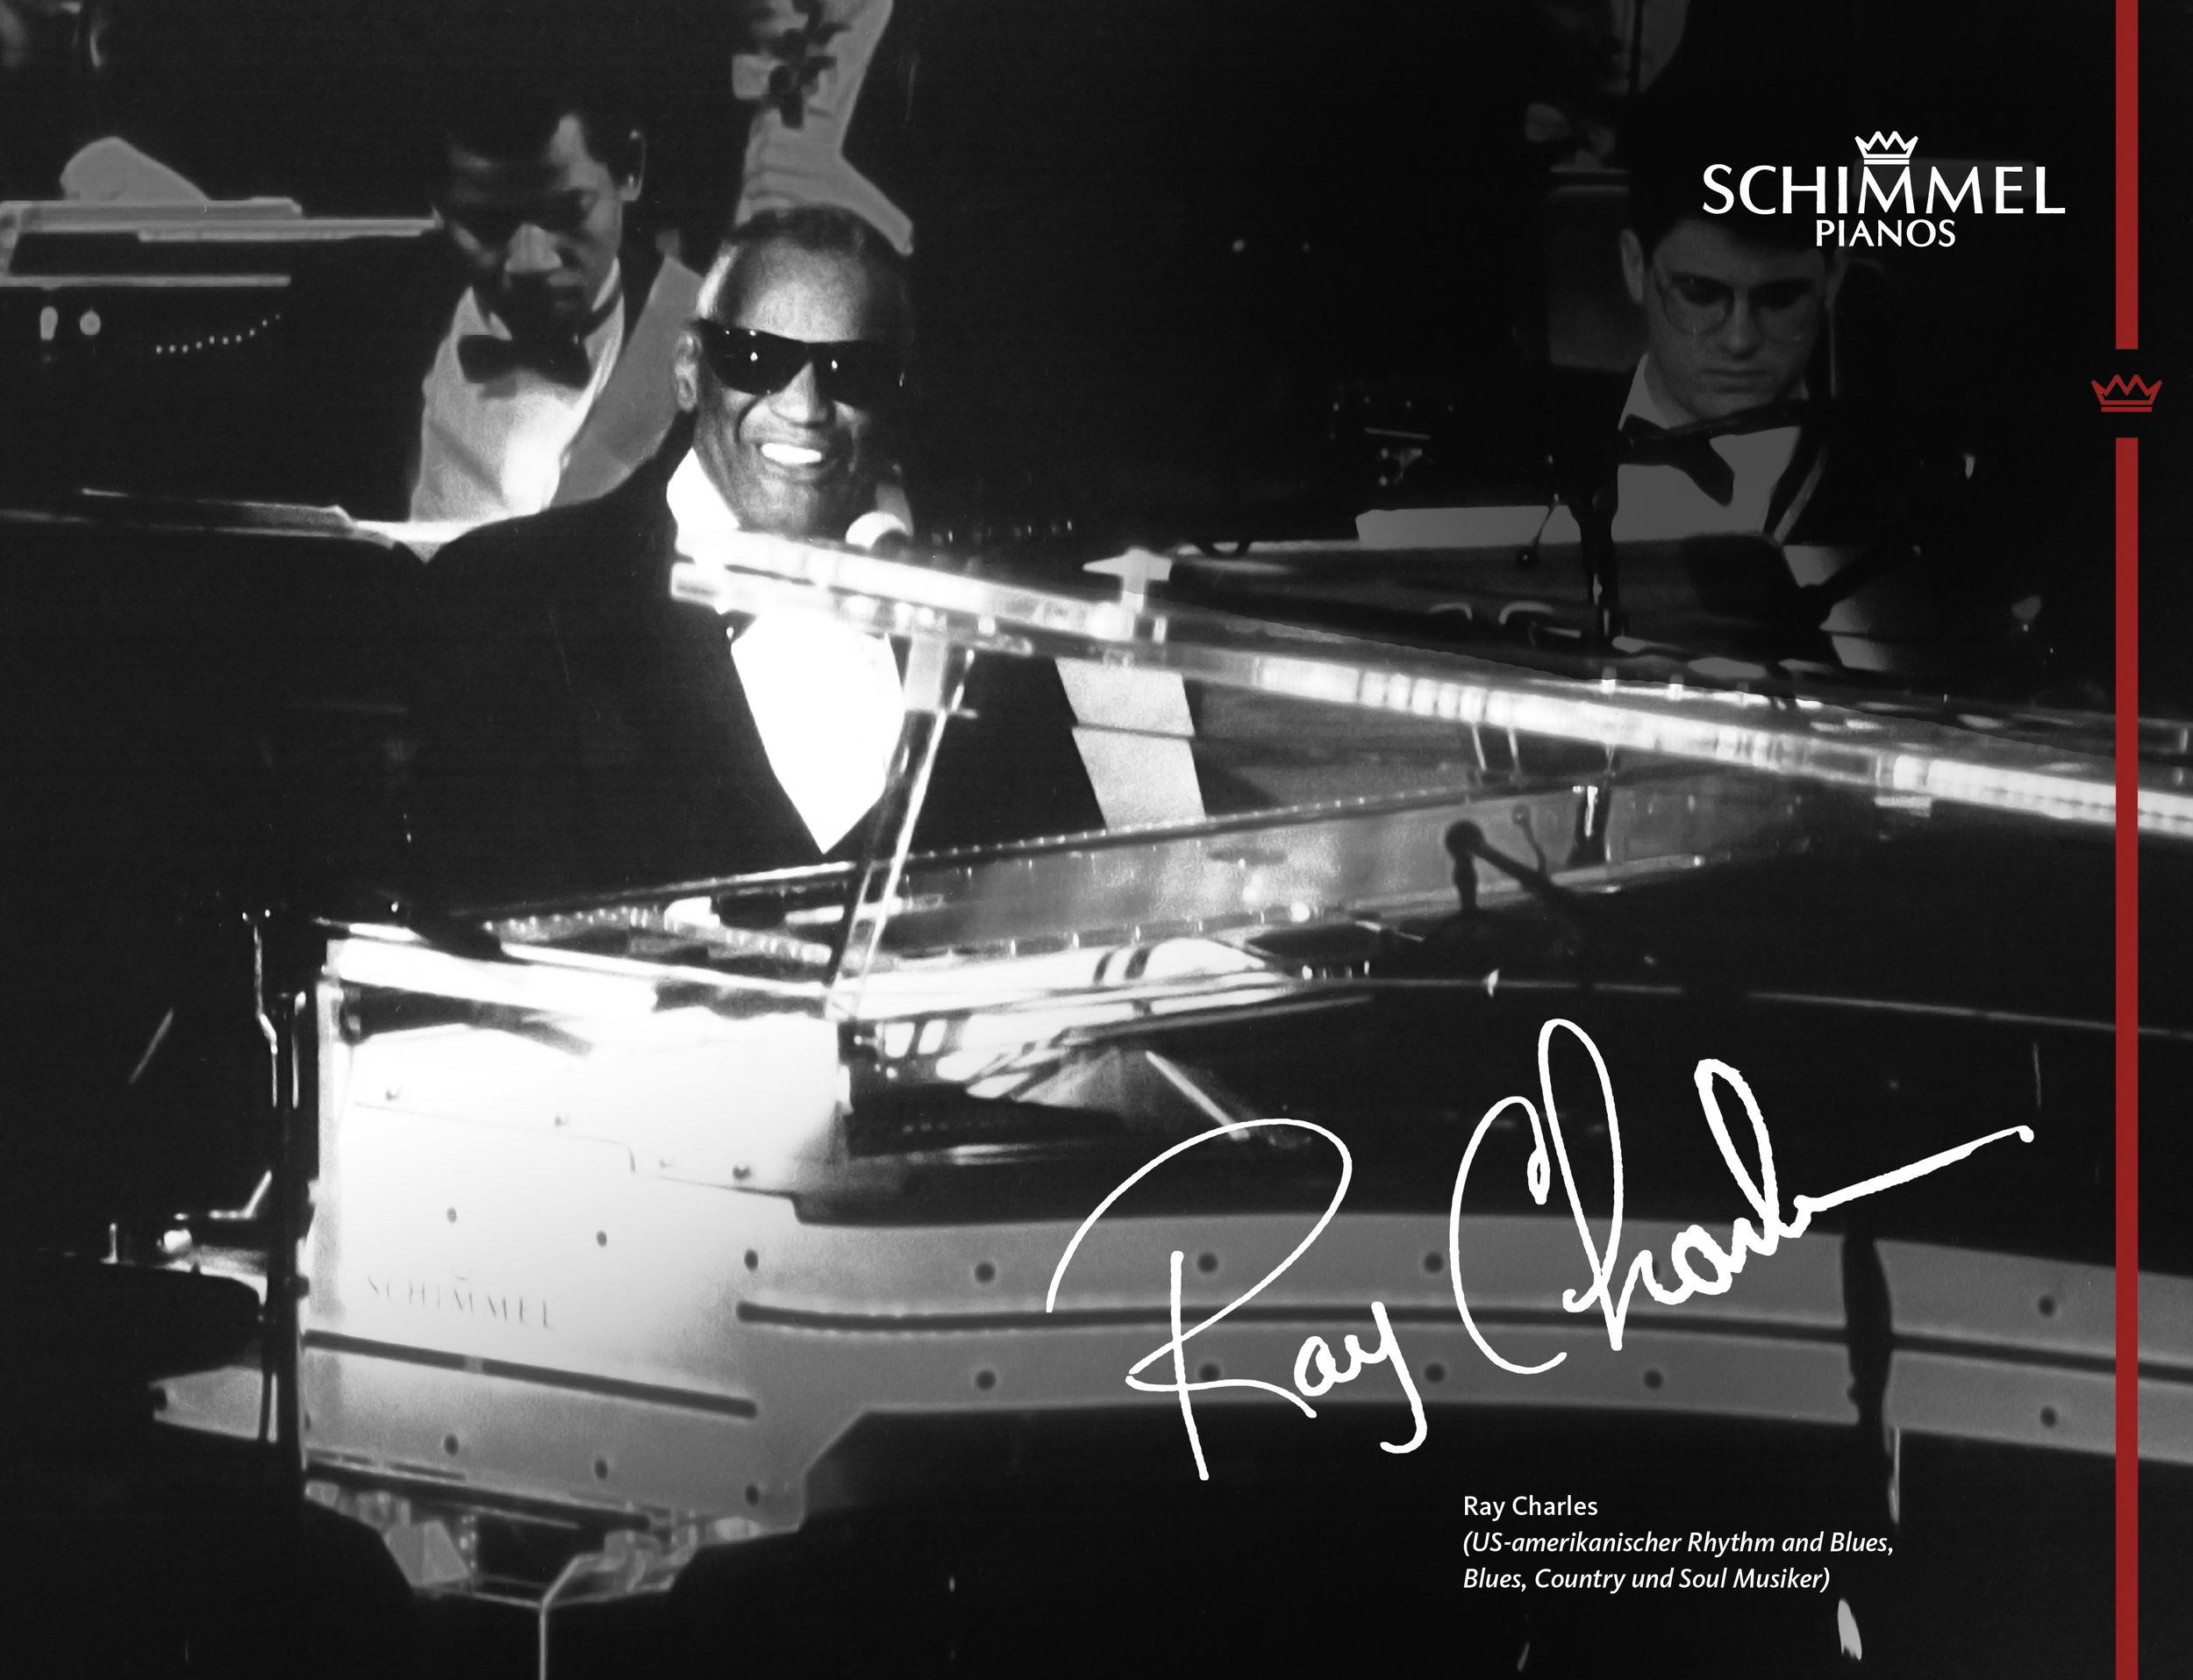 Ray Charles Schimmel Pianos